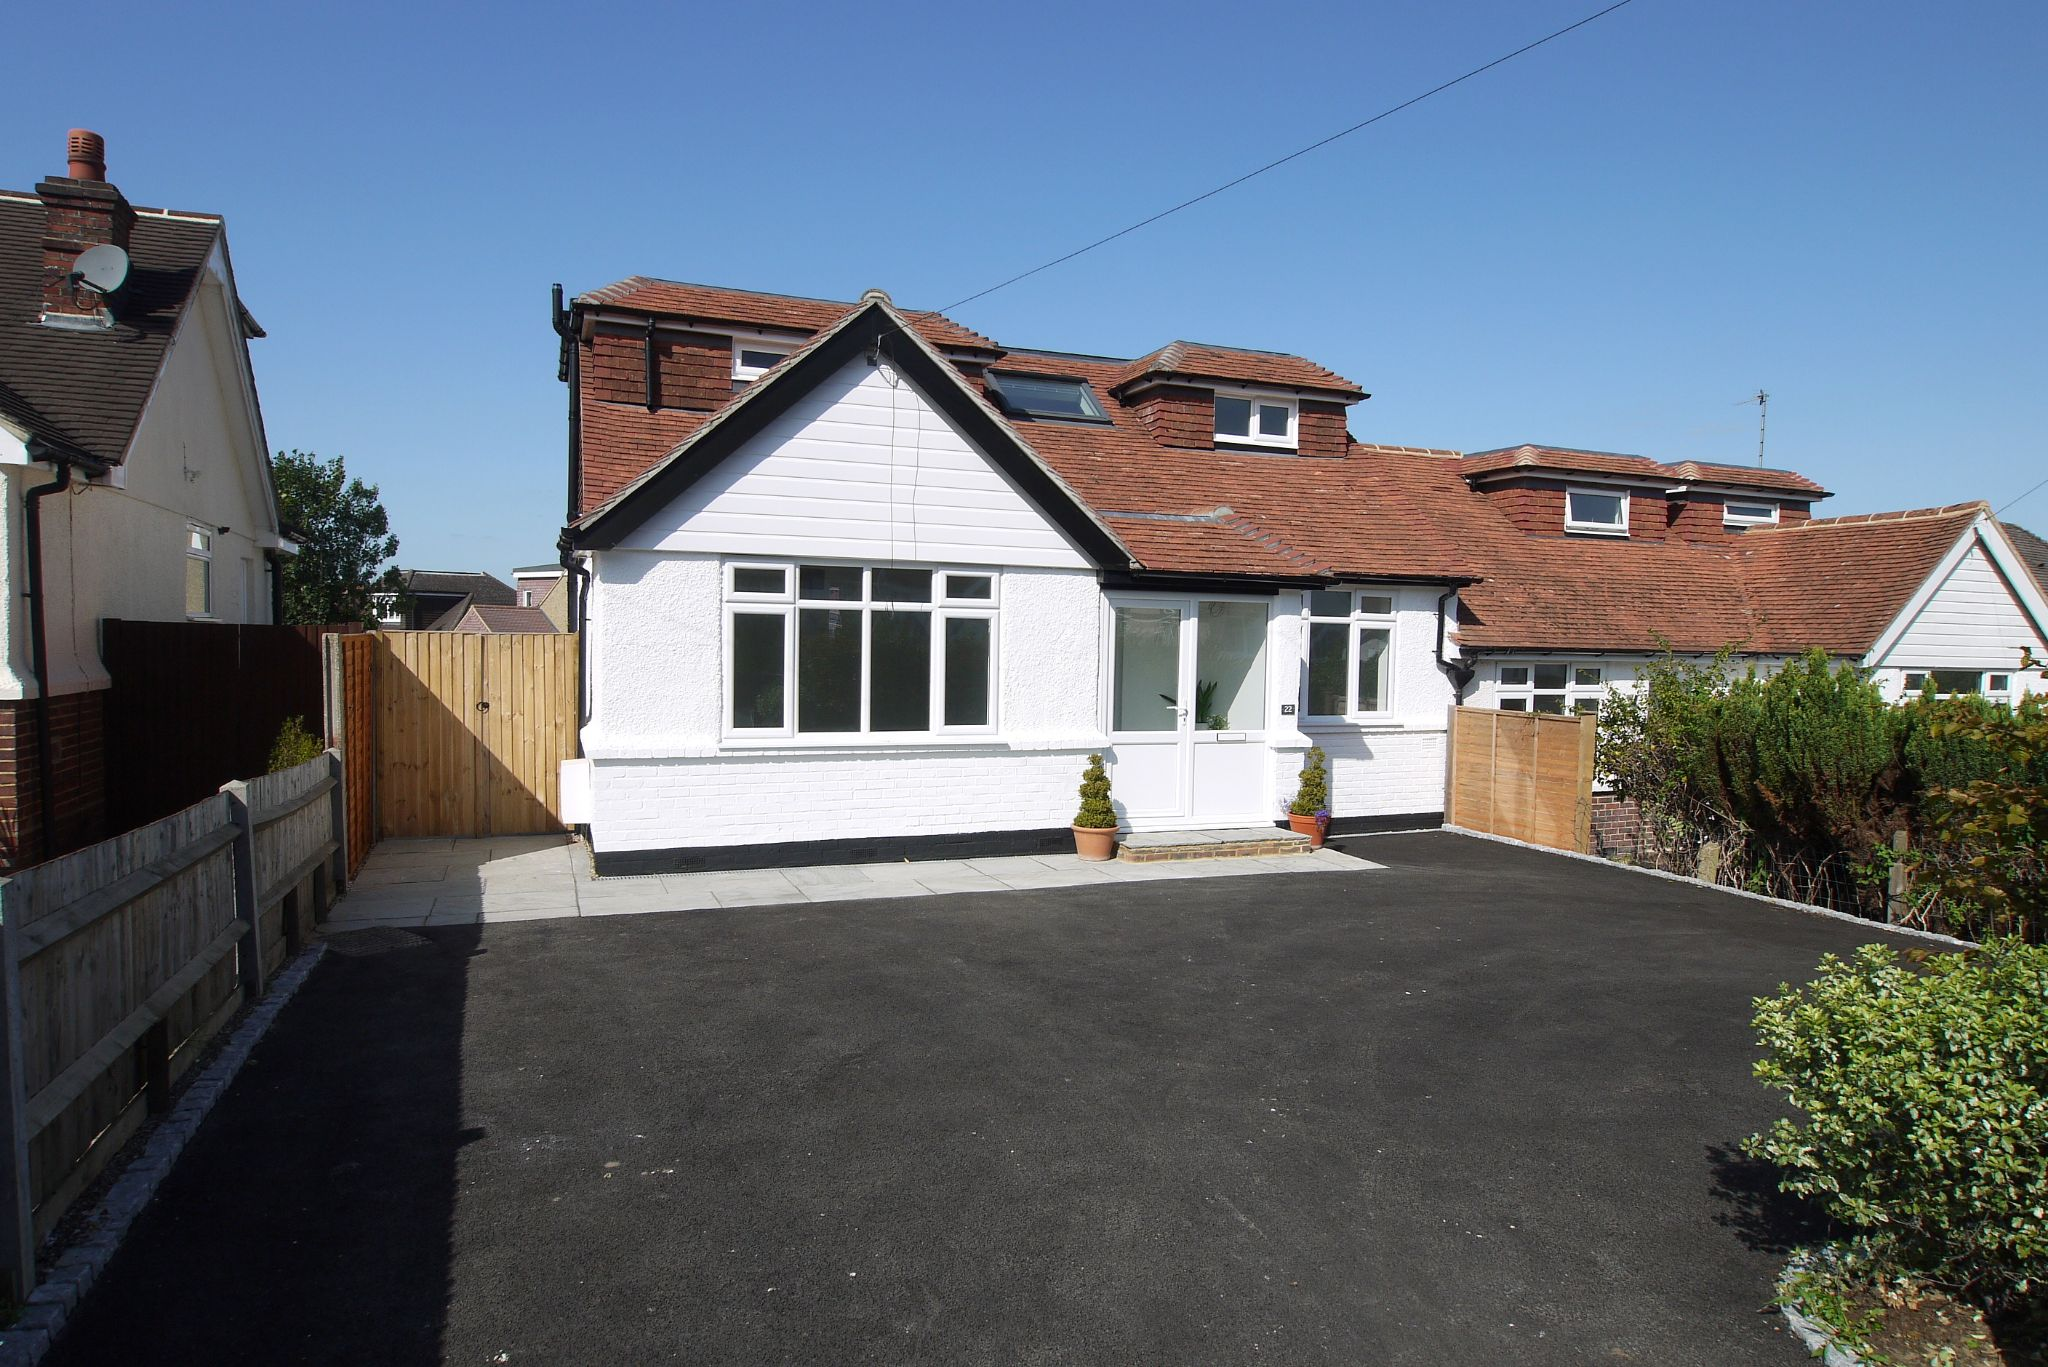 3 bedroom chalet house For Sale in Sevenoaks - Photograph 1